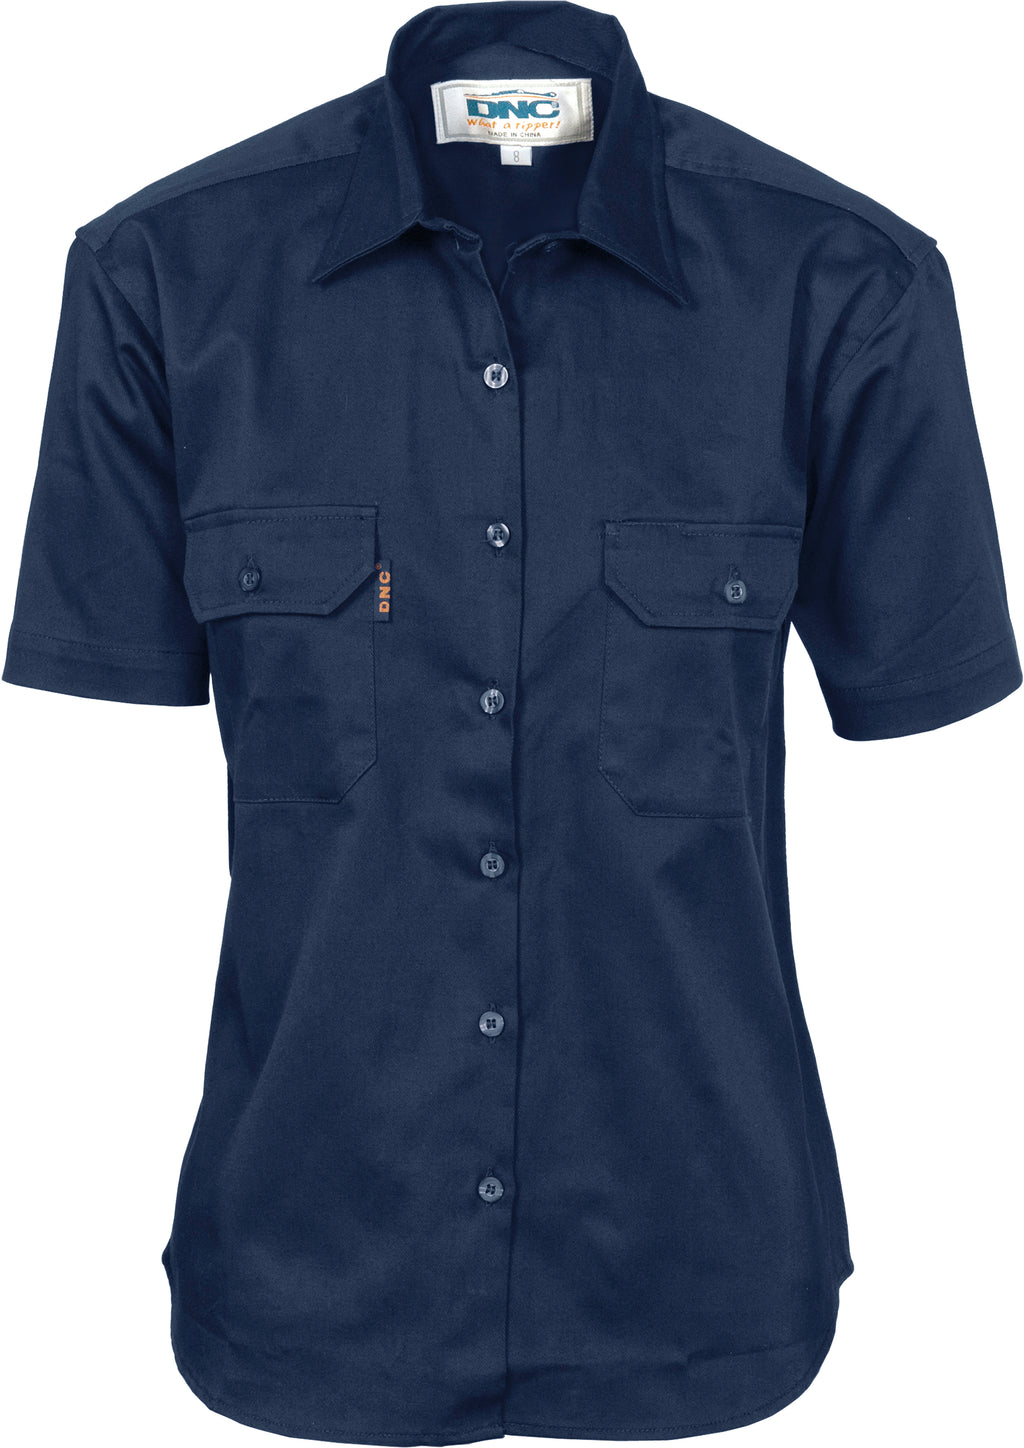 3231 - Ladies Cotton Drill Work Shirt - Short Sleeve